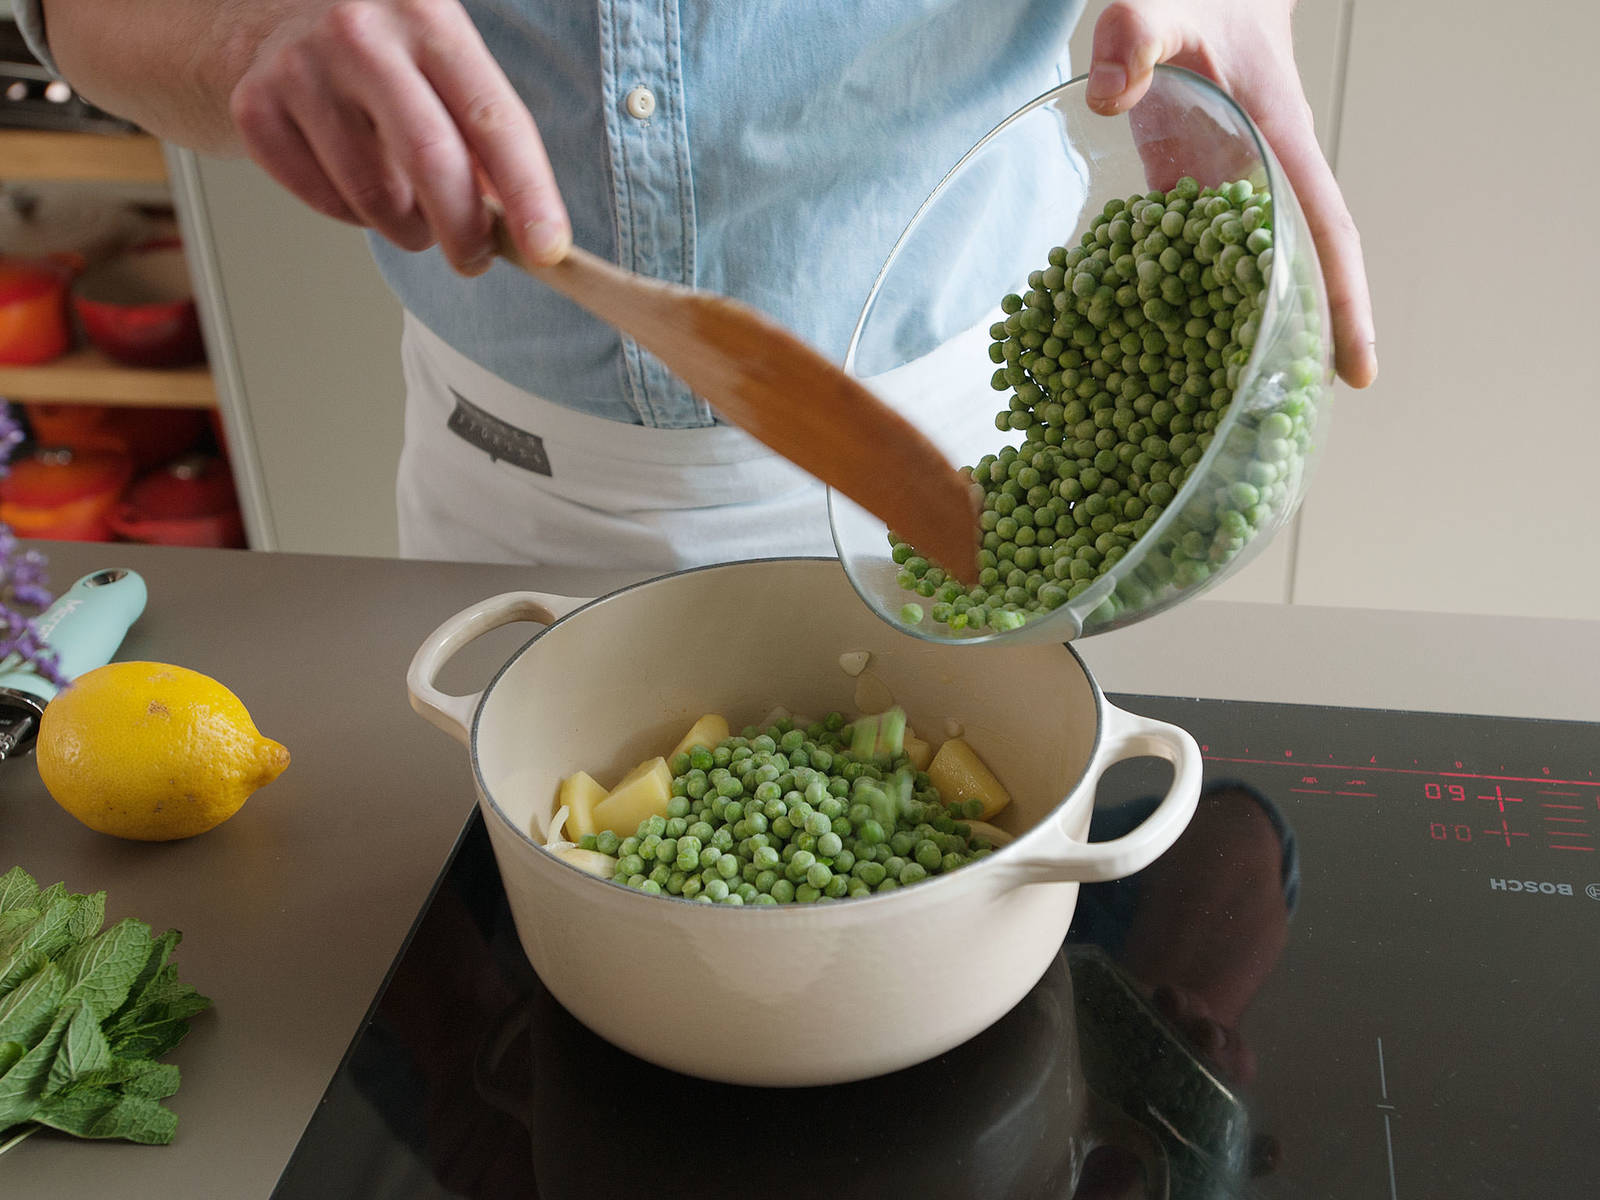 Melt butter in a large saucepan on medium heat. Add chopped potato, onion, and garlic and sauté for approx. 2 – 3 min. Add some of the frozen peas and some of the mint. Season with salt and pepper and continue to cook for approx. 2 – 3 min.